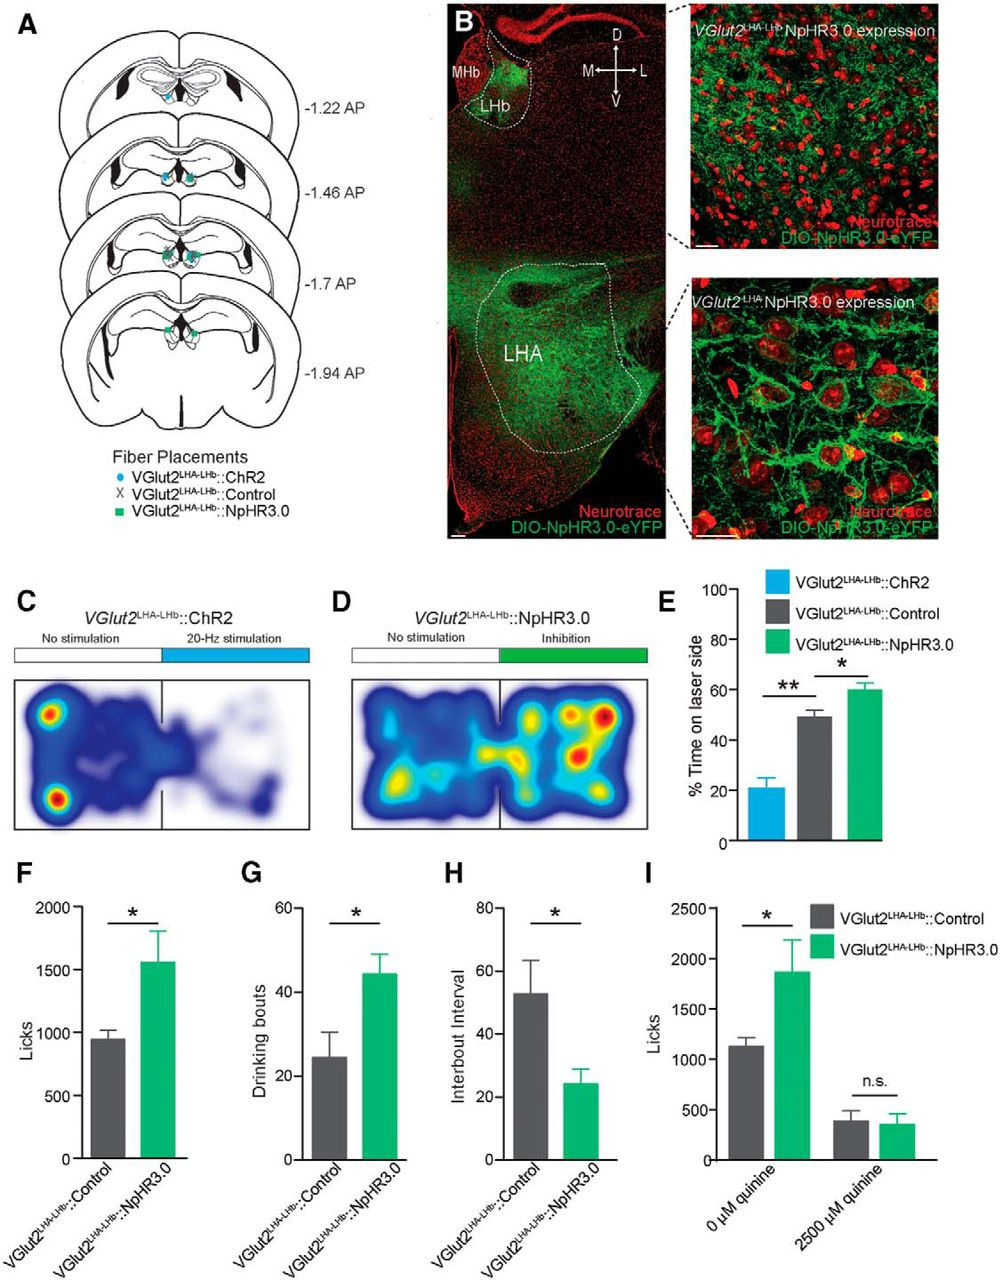 Lateral Hypothalamic Area Glutamatergic Neurons And Their Schematic Diagram Of Optical Fiber Download Figure